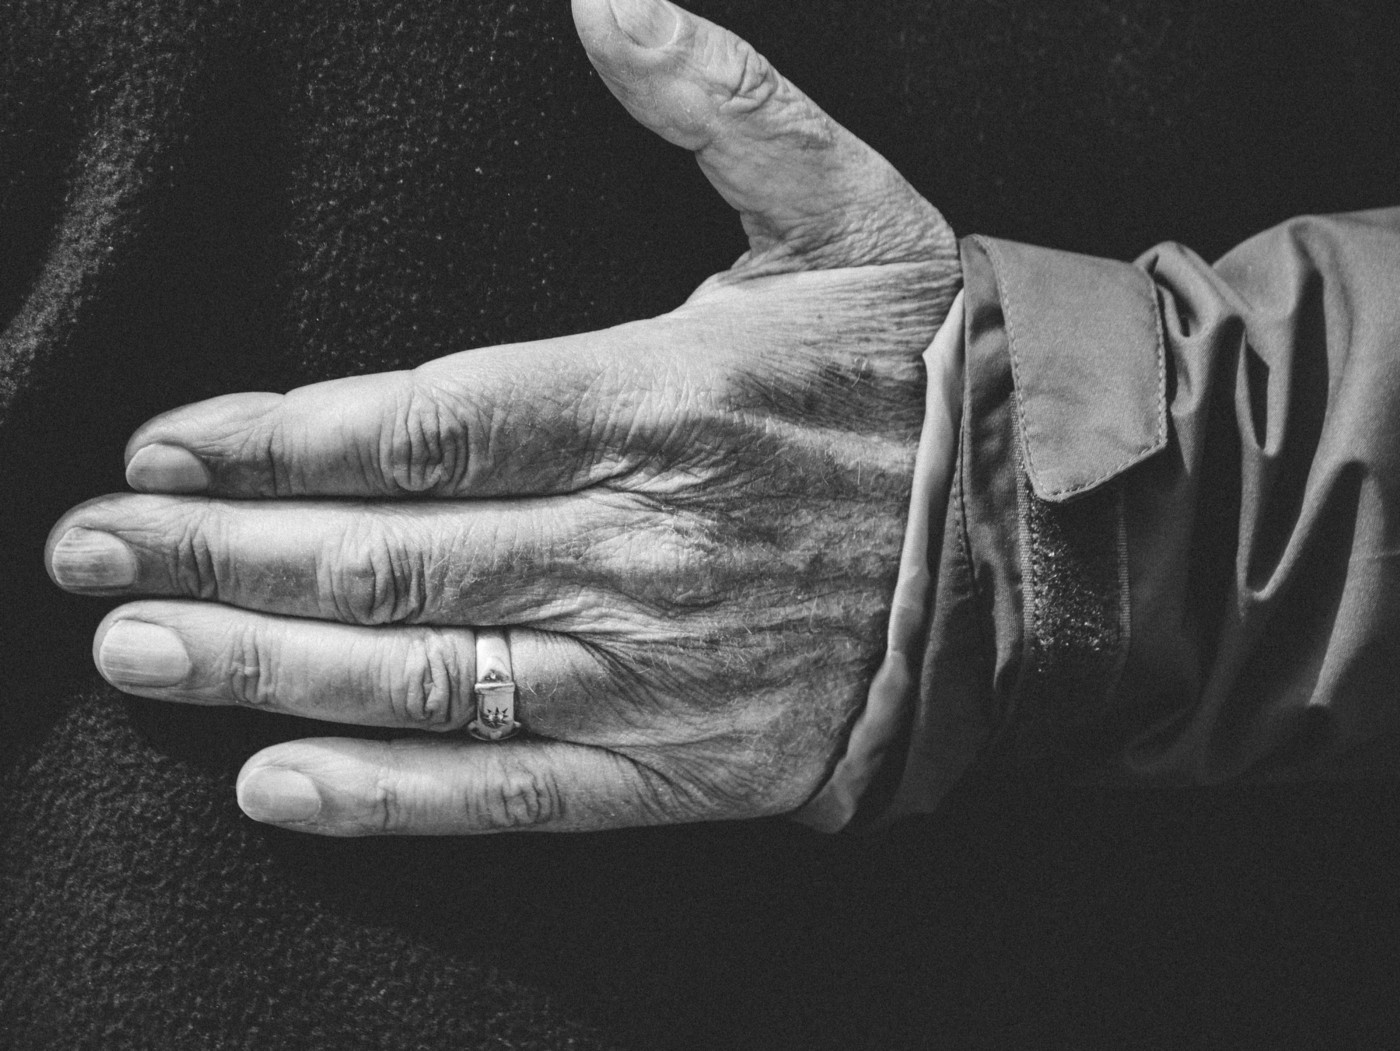 The hand of an elderly person.